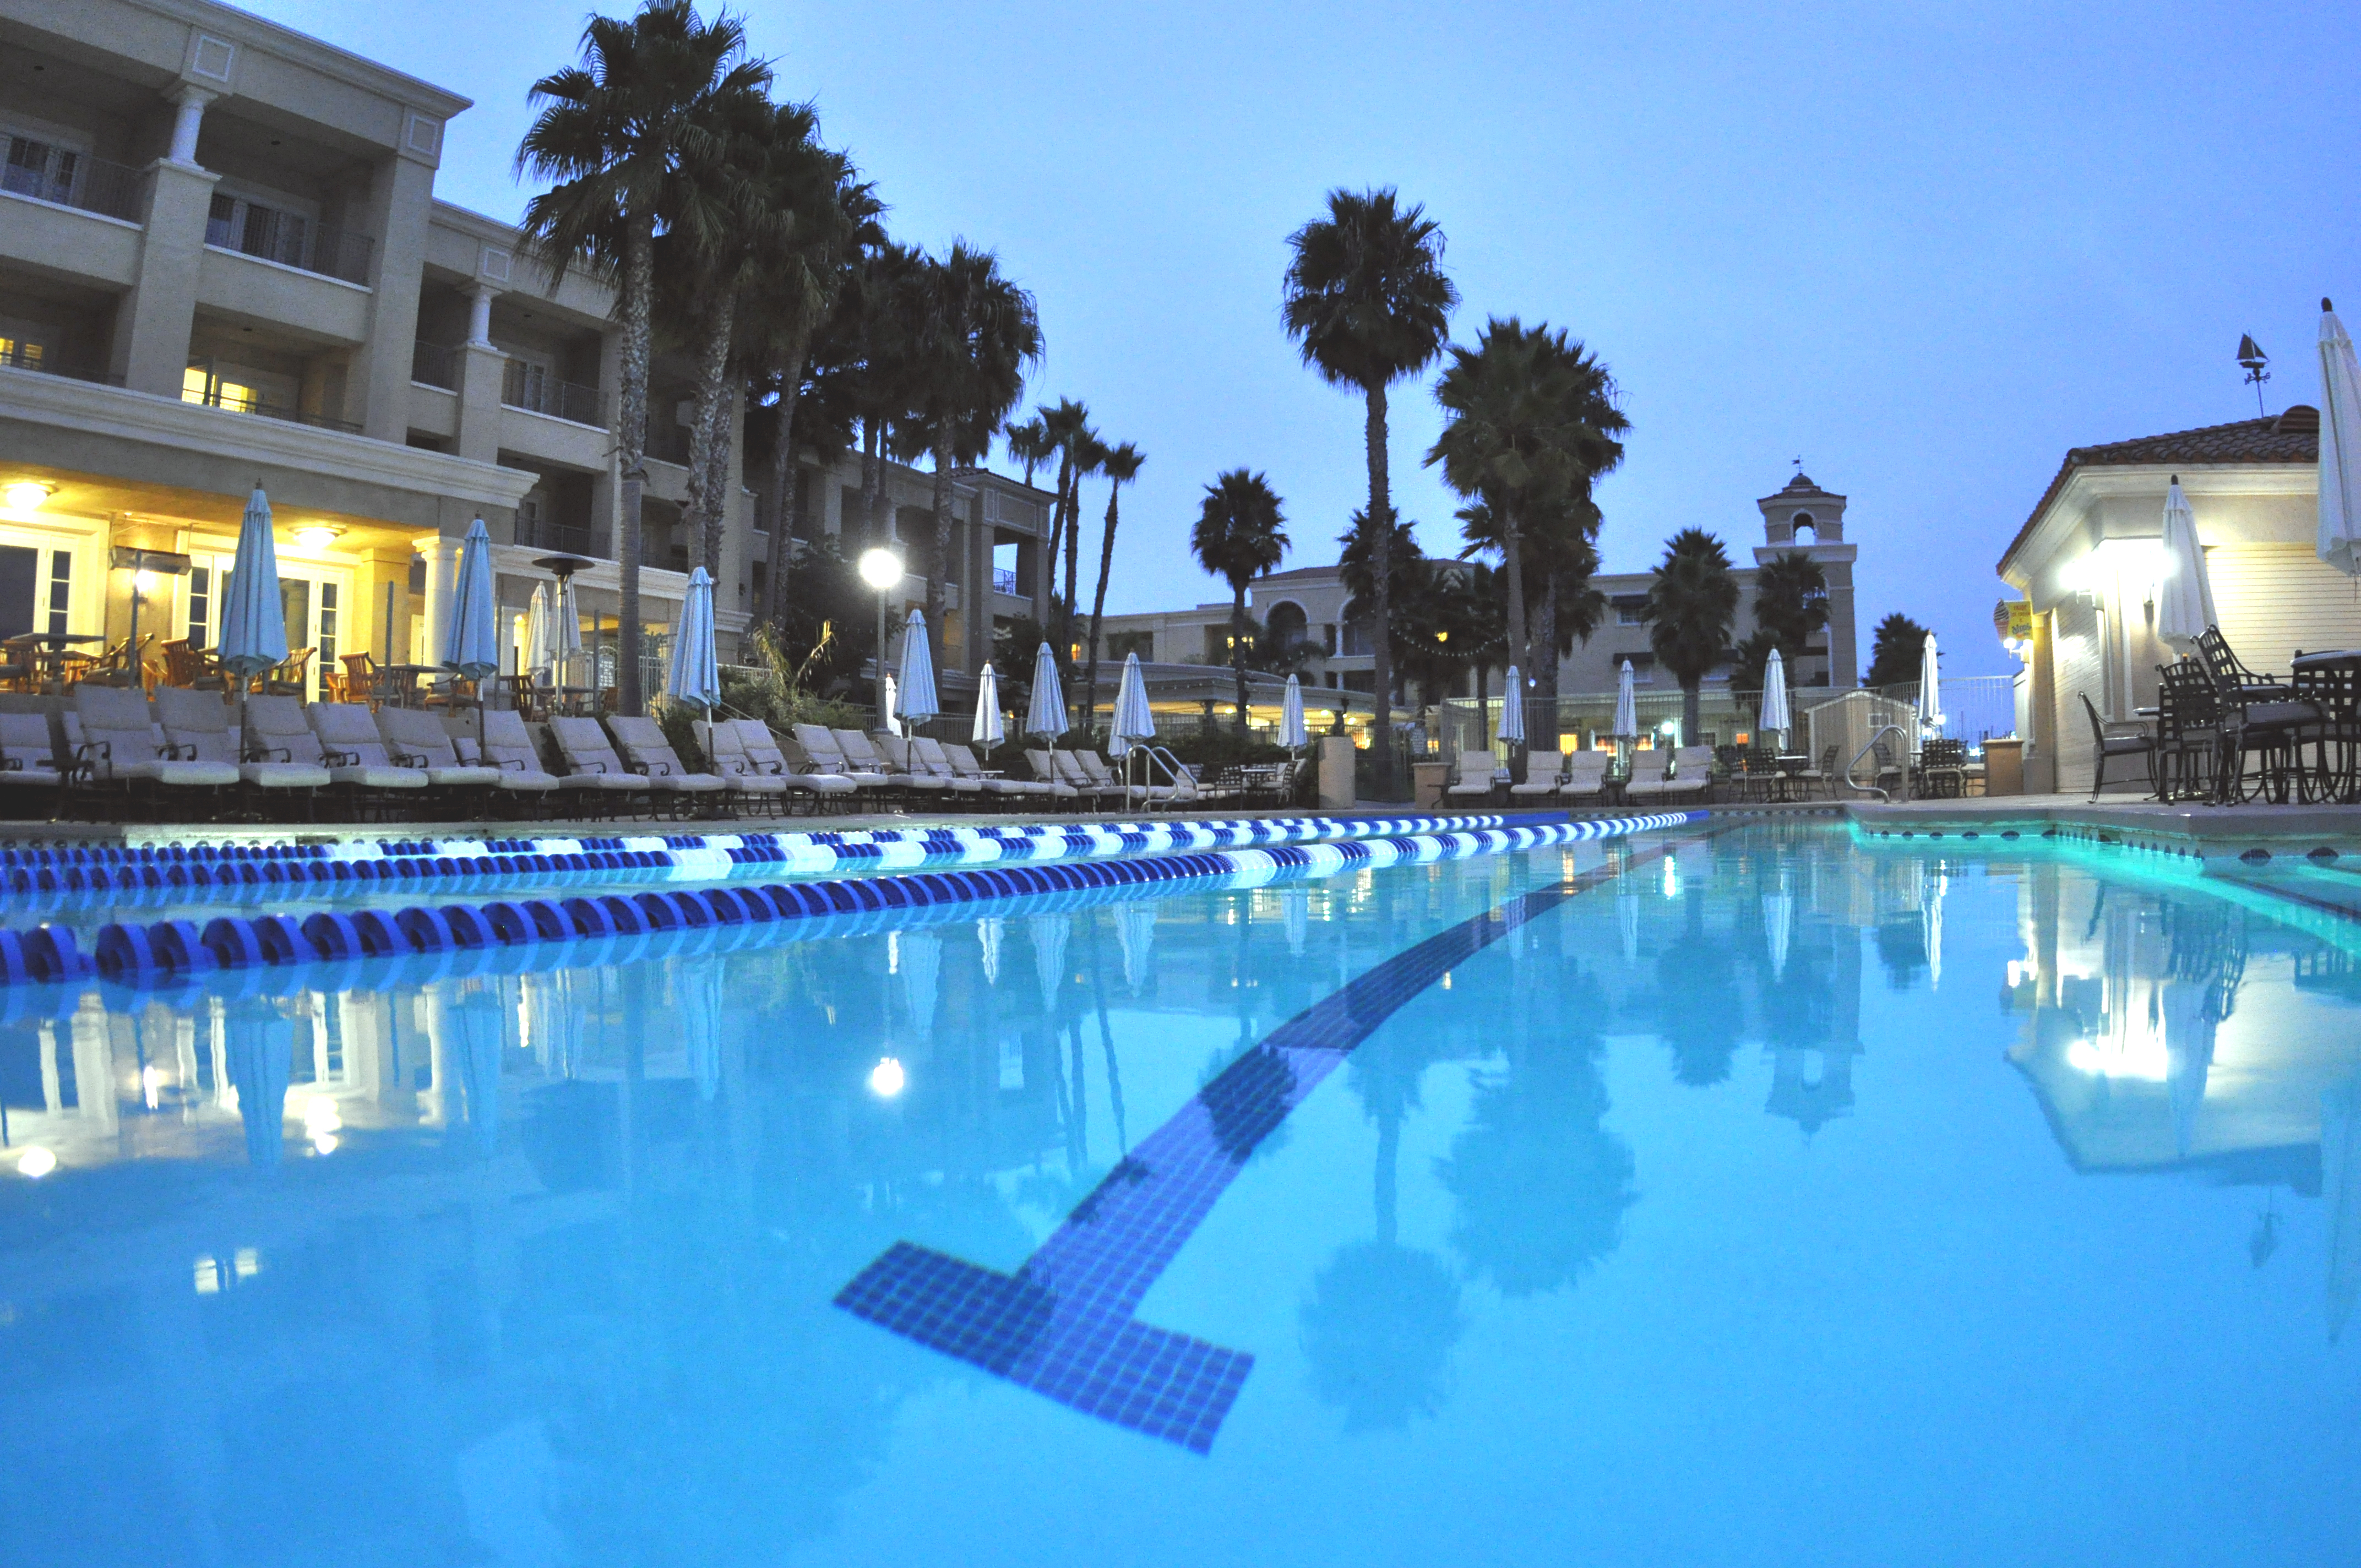 Newport beach newport and bays on pinterest for Balboa bay resort